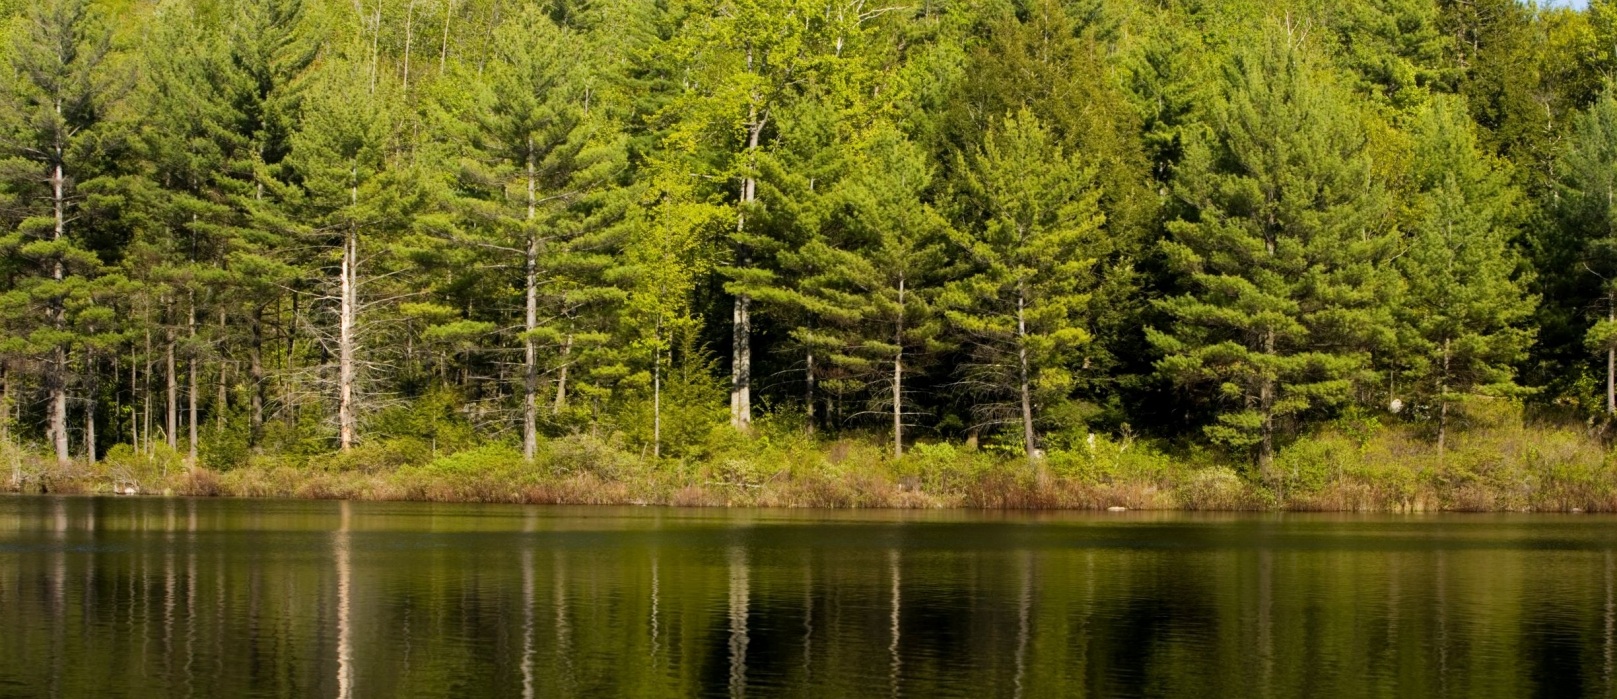 Green water reflects a stand of trees at Moose Mountains.